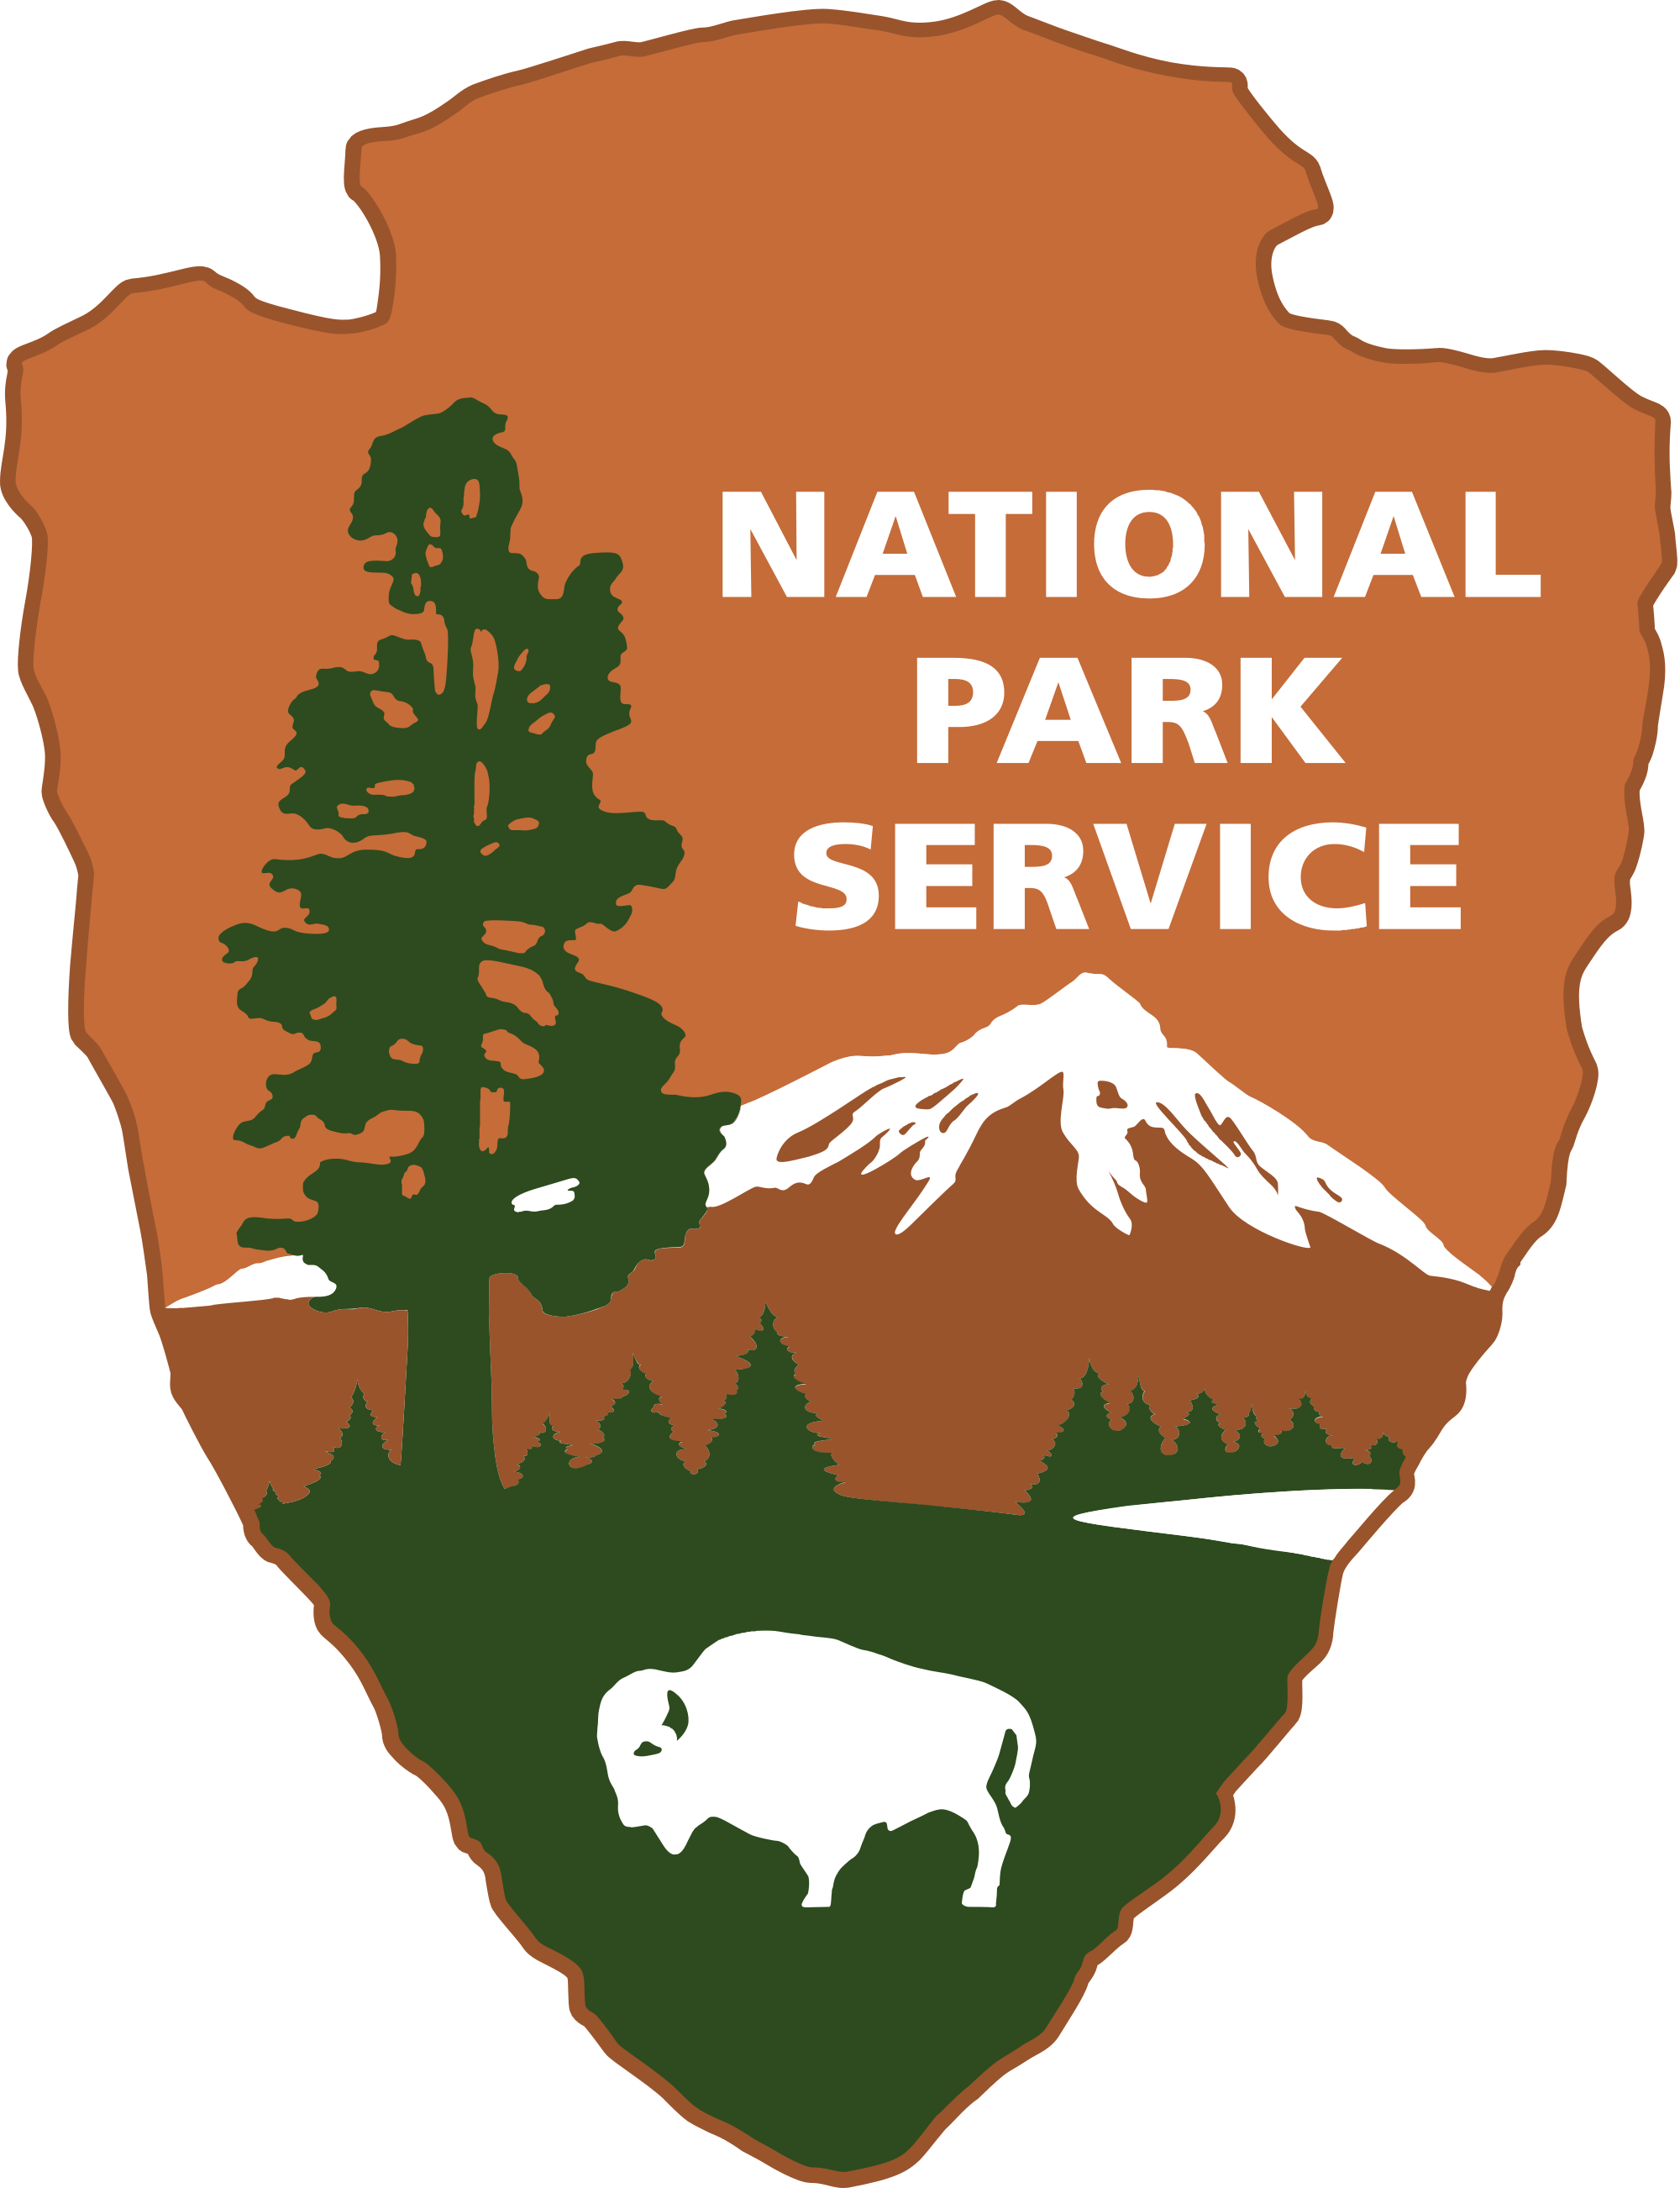 NPS Arrowhead logo. Shows a mountain in the background, with a tree, bison, and lake in the foreground. Grass and tree are green. The bison, lake, and snow on the mountain are white. Sky and mountain is brown.